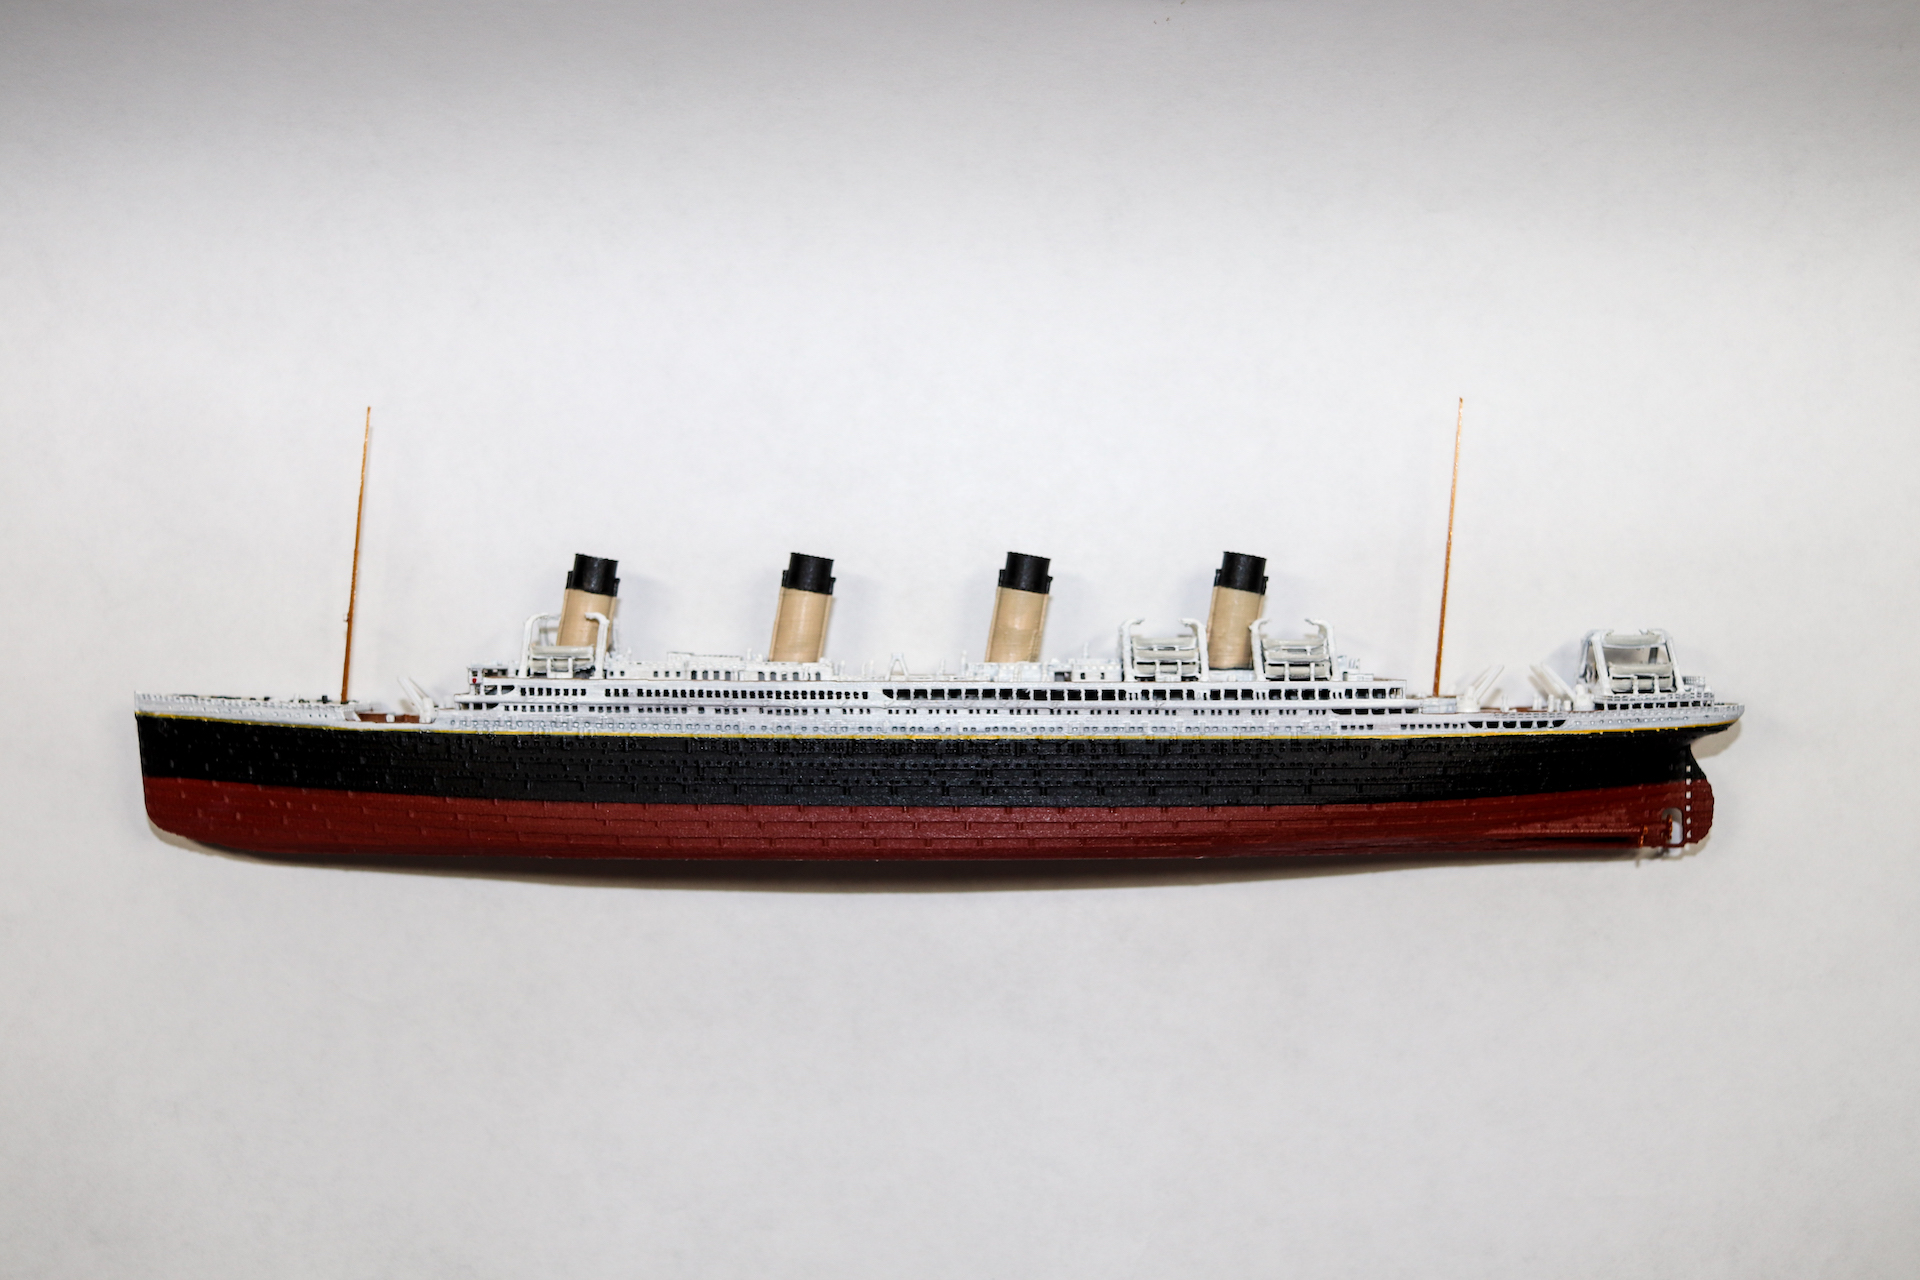 RMS Britannic Model - Click for details